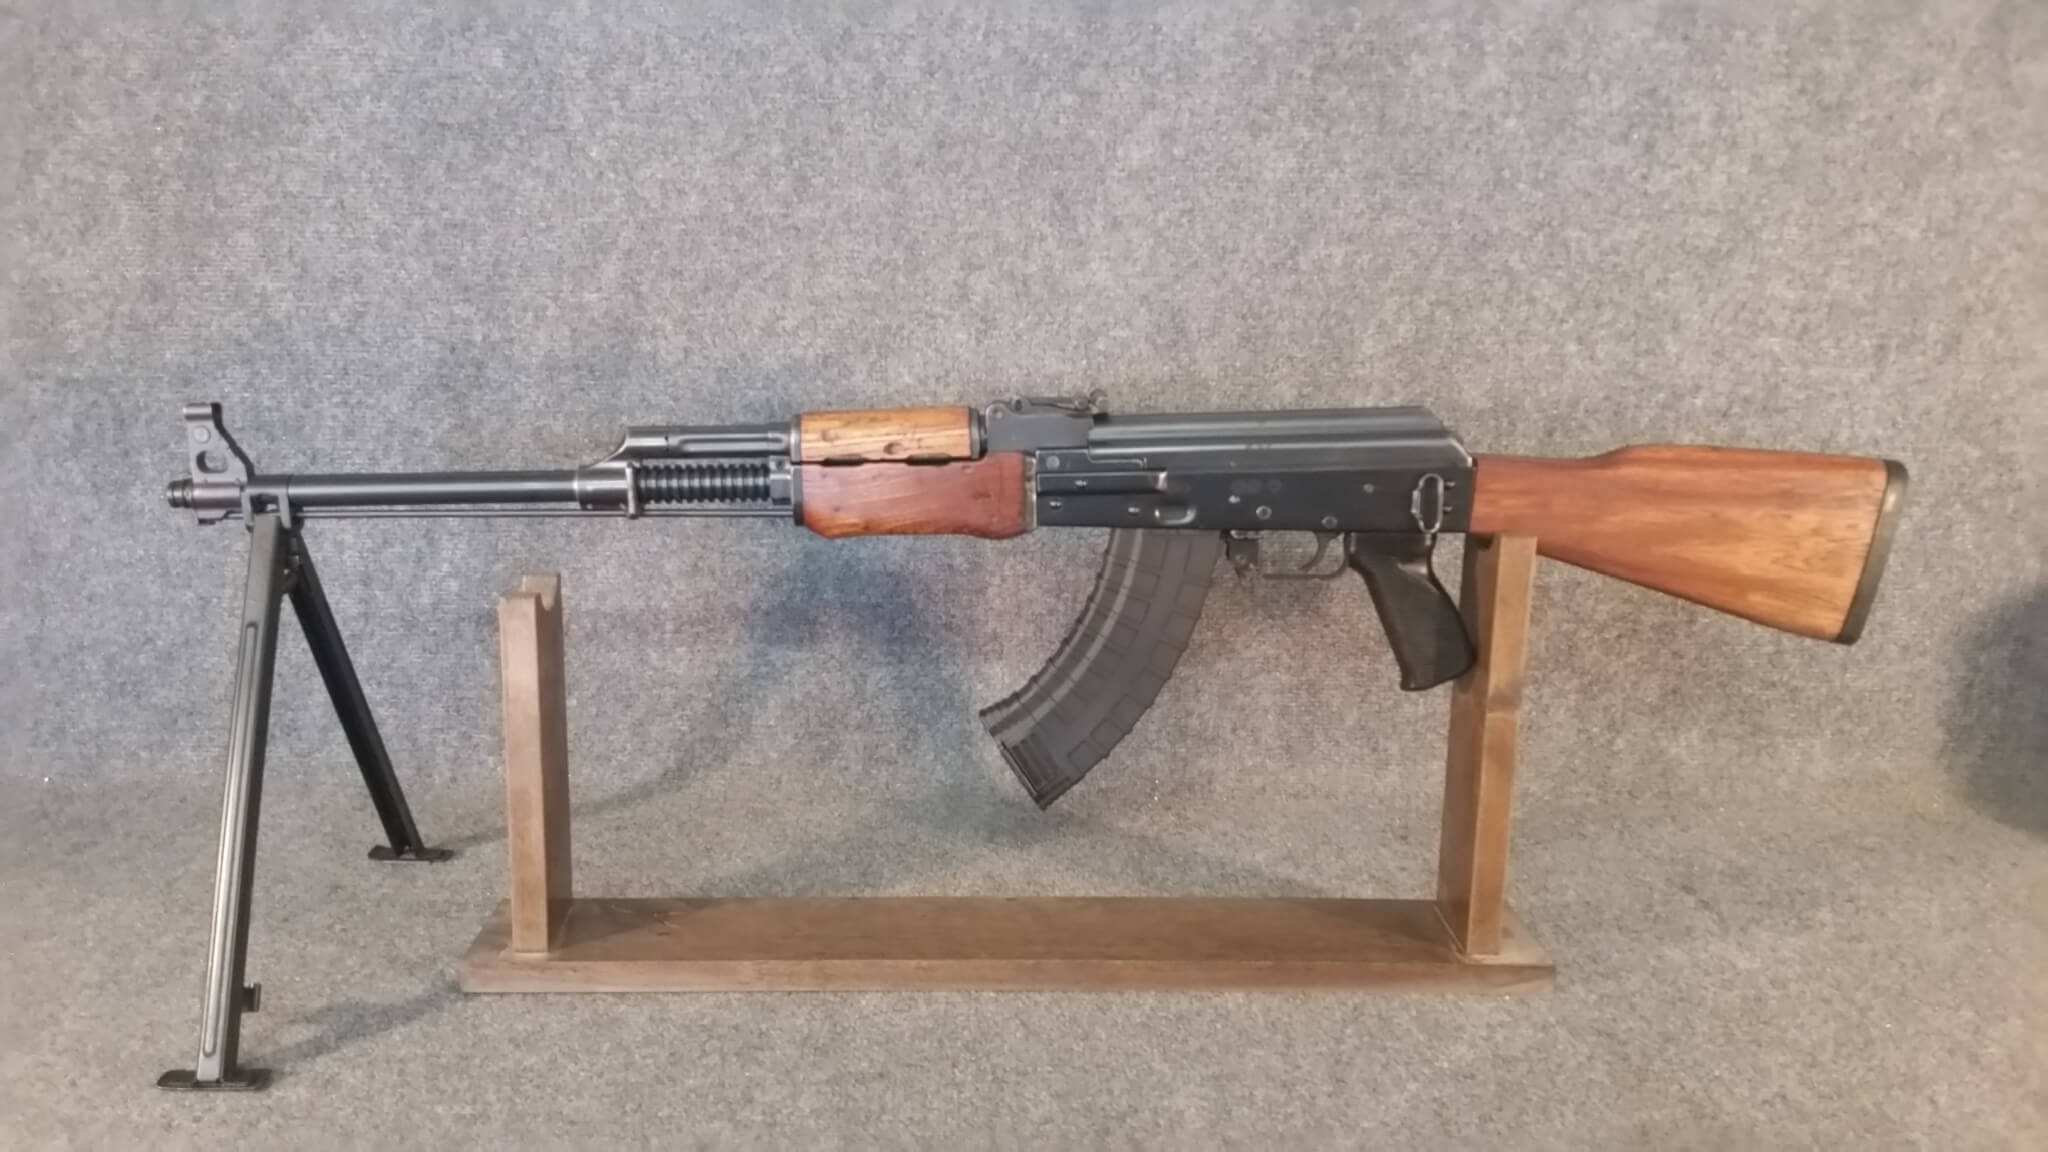 NGS Yugo M72B1 BFPU with surplus wood furniture